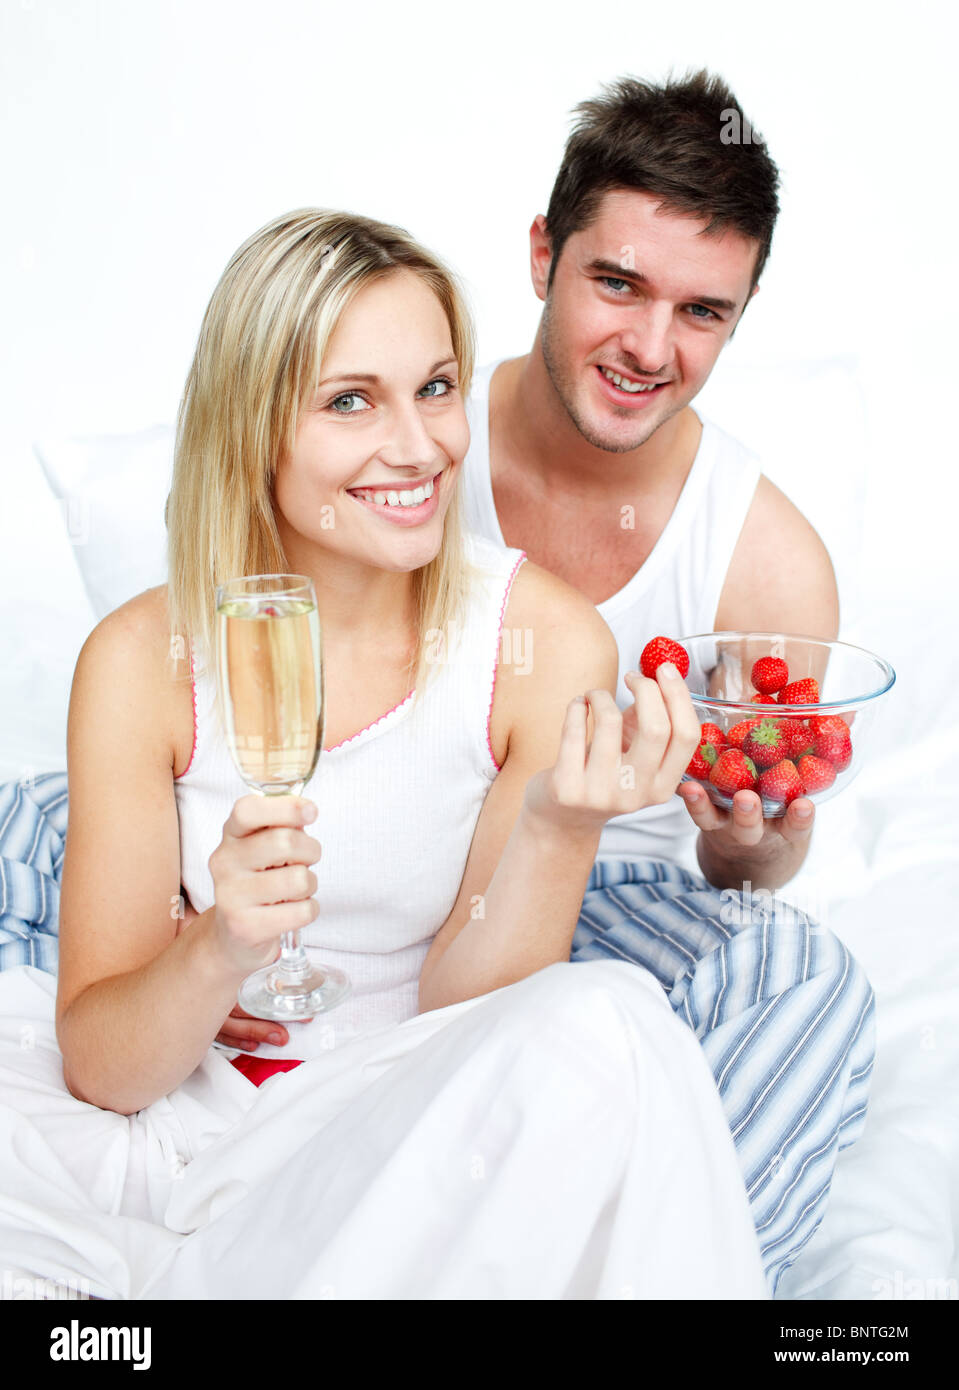 Loves eating strawberries and drinking champagne - Stock Image